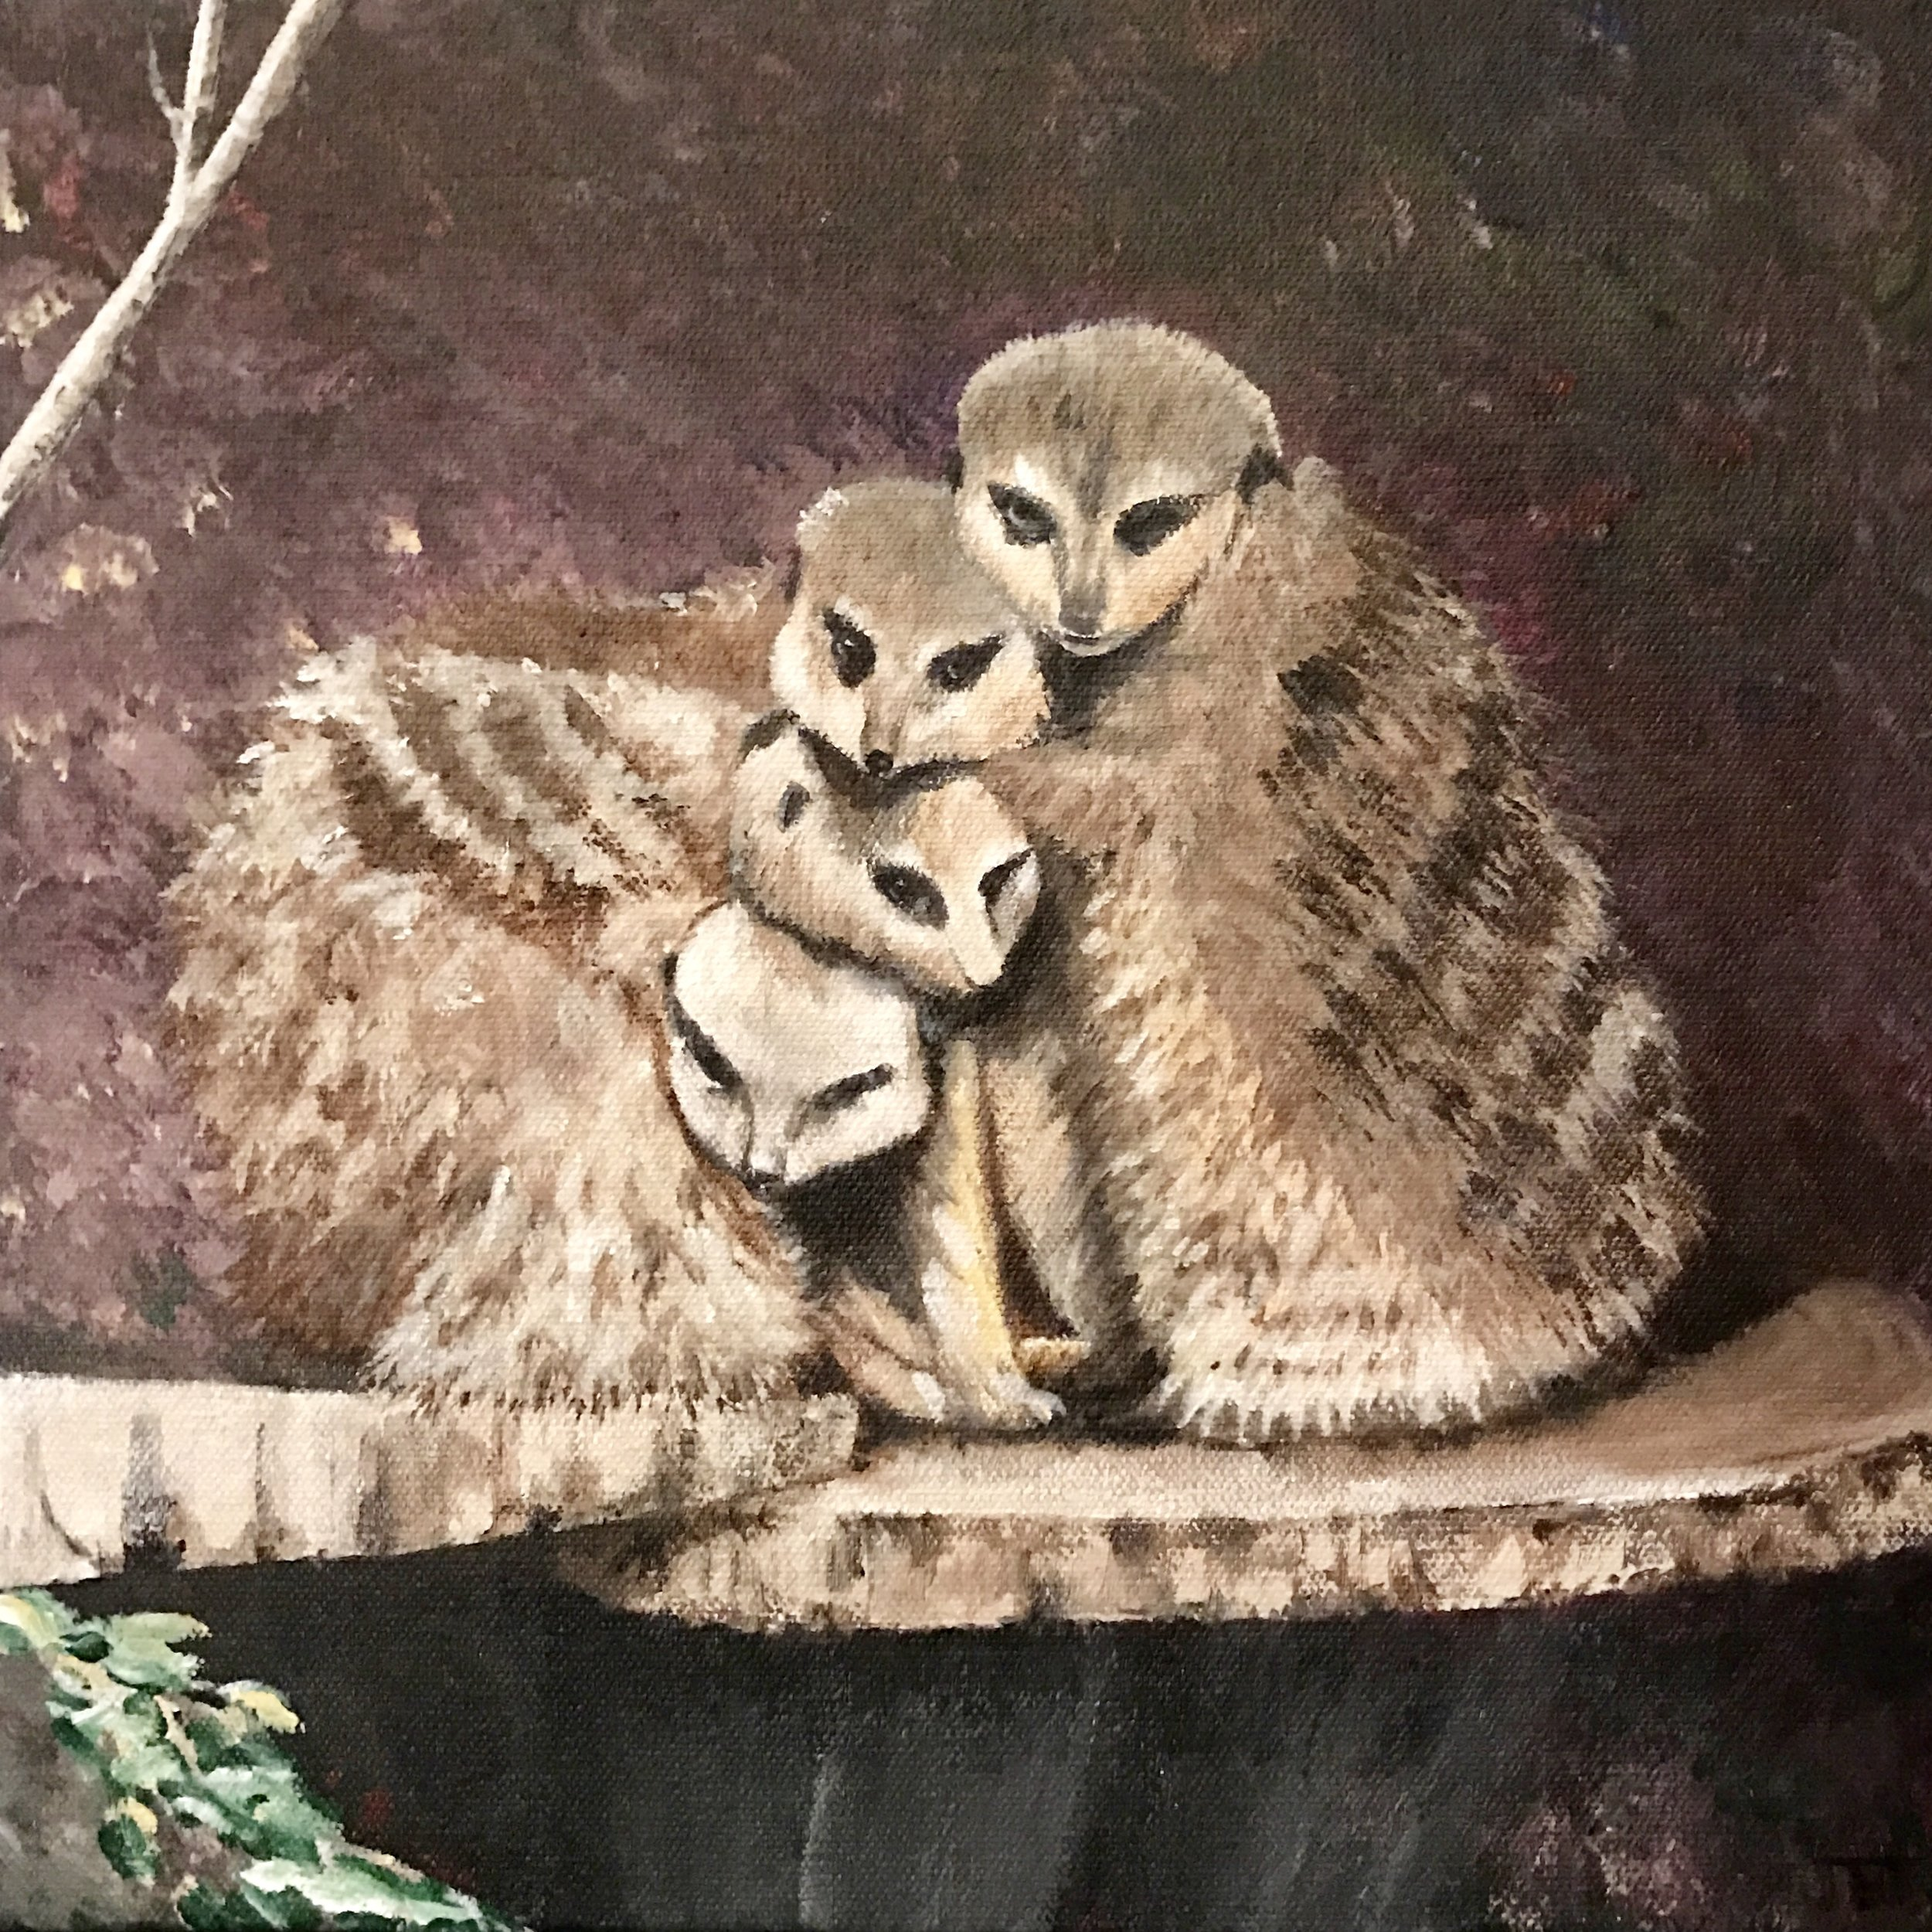 We're all just chilly meerkats on a stump in a zoo. Here's a hug from me.